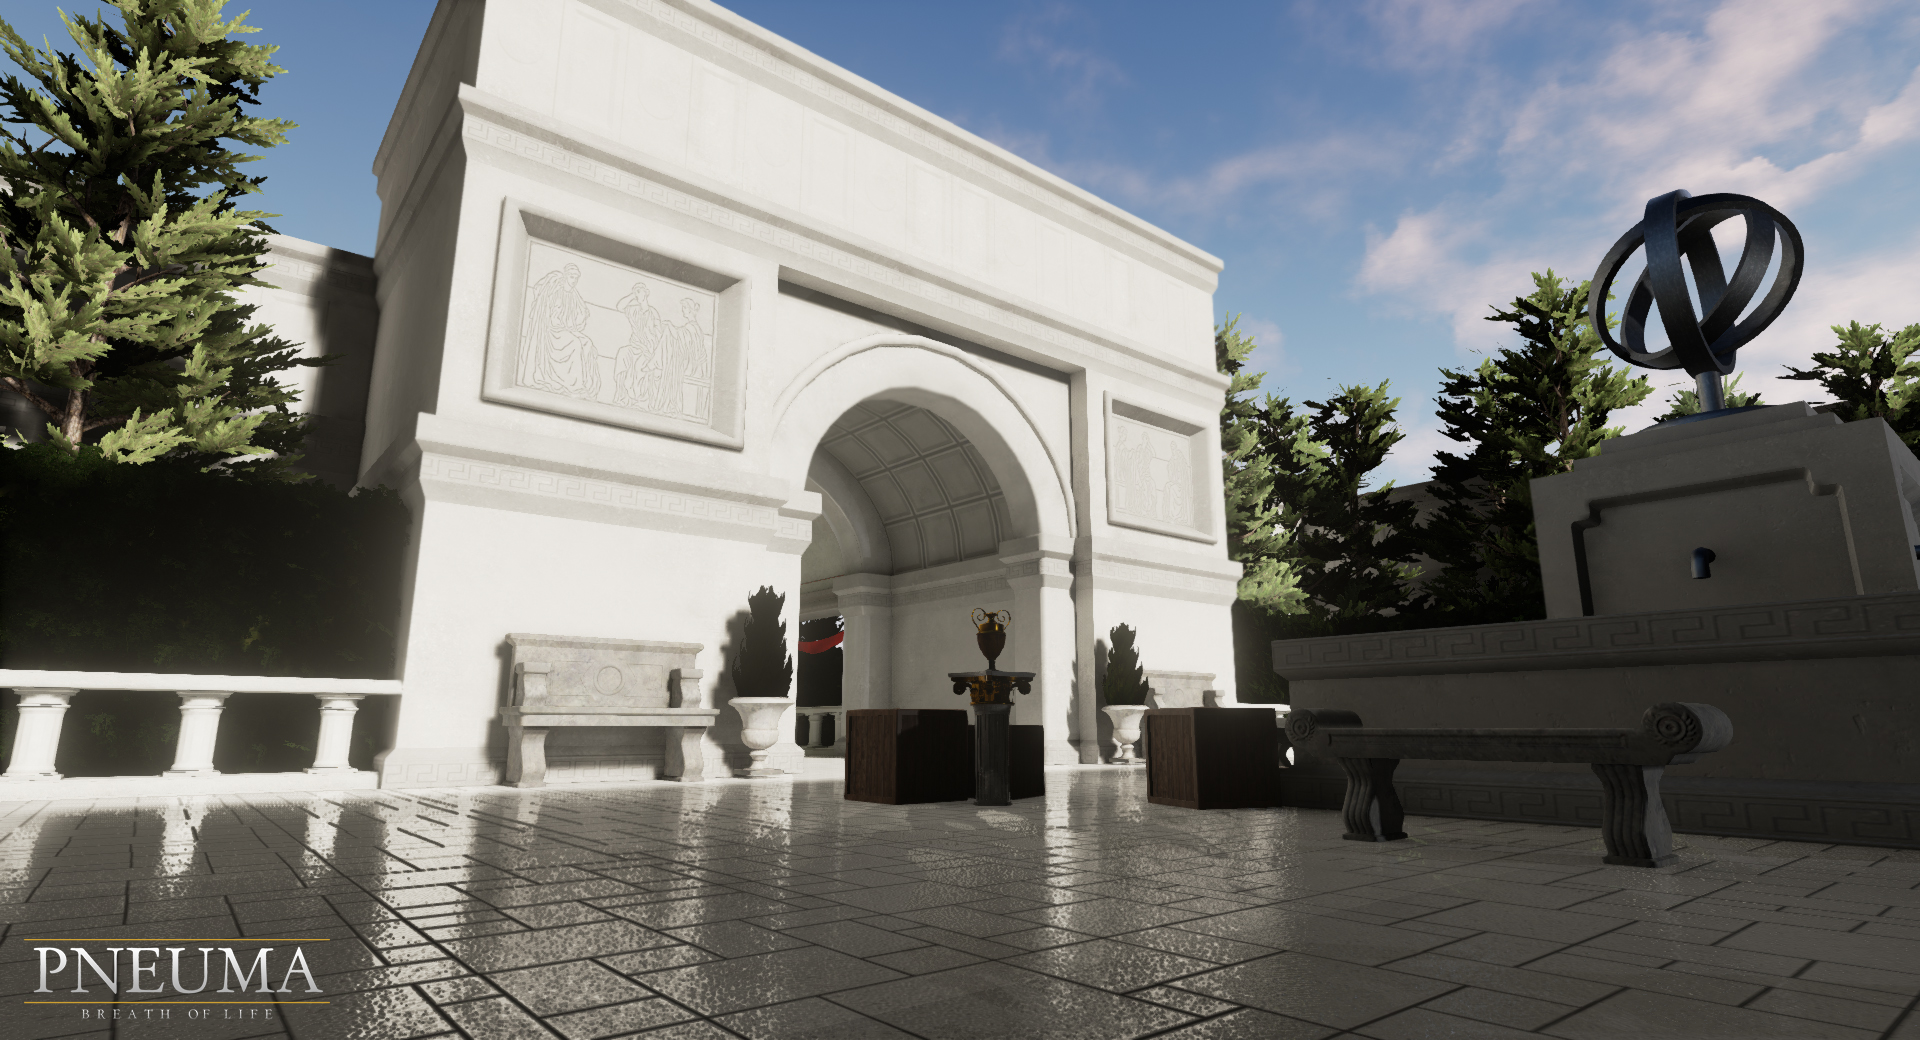 pneuma-screenshot-02